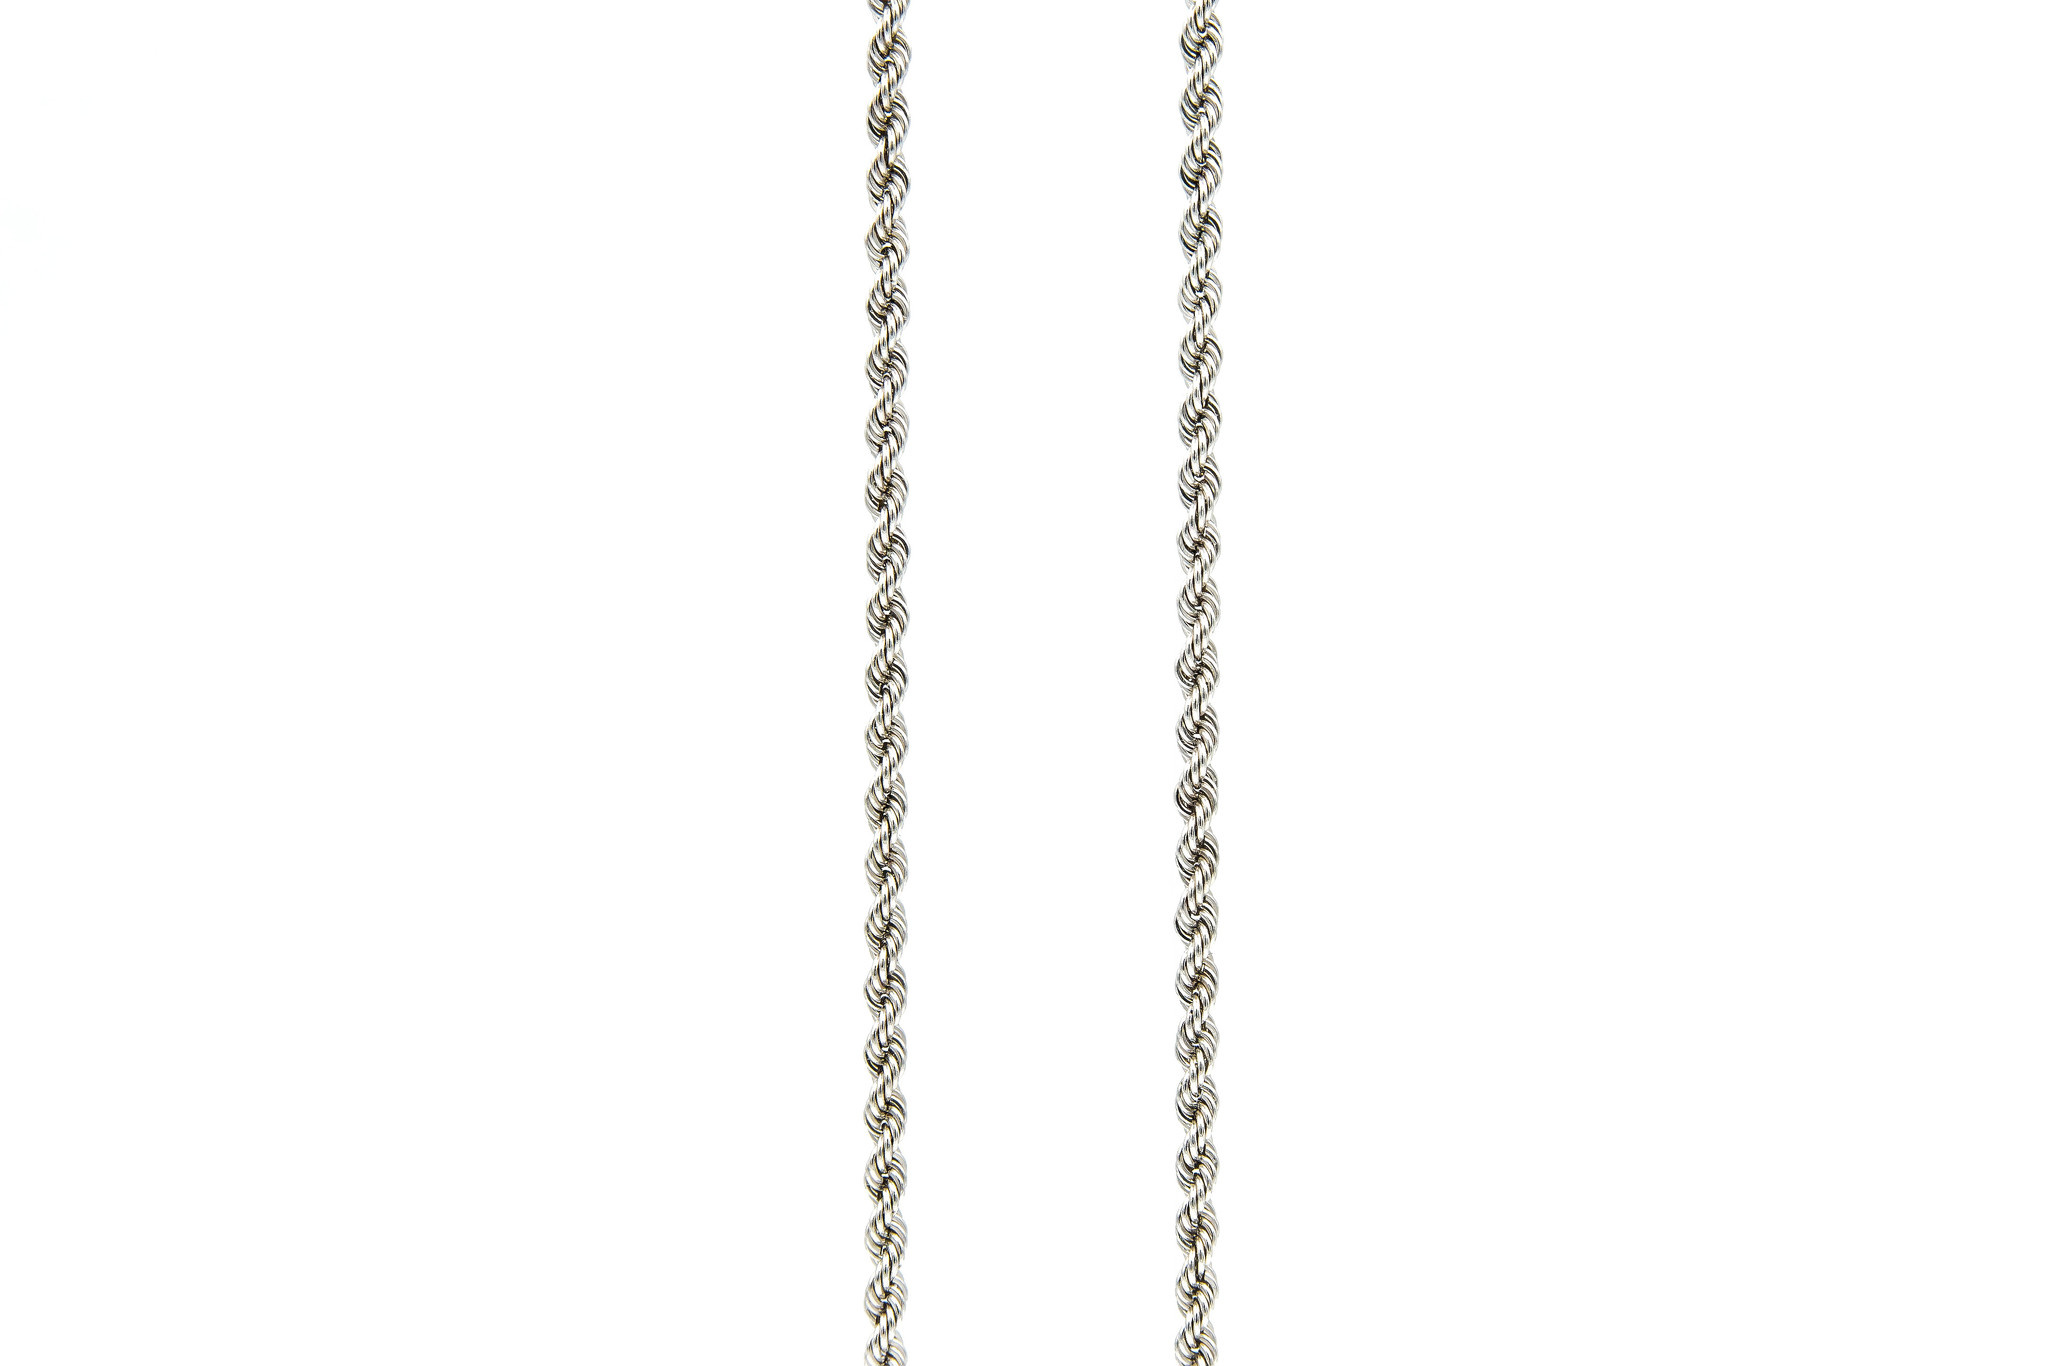 Rope chain witgoud 14kt 3.5mm-6